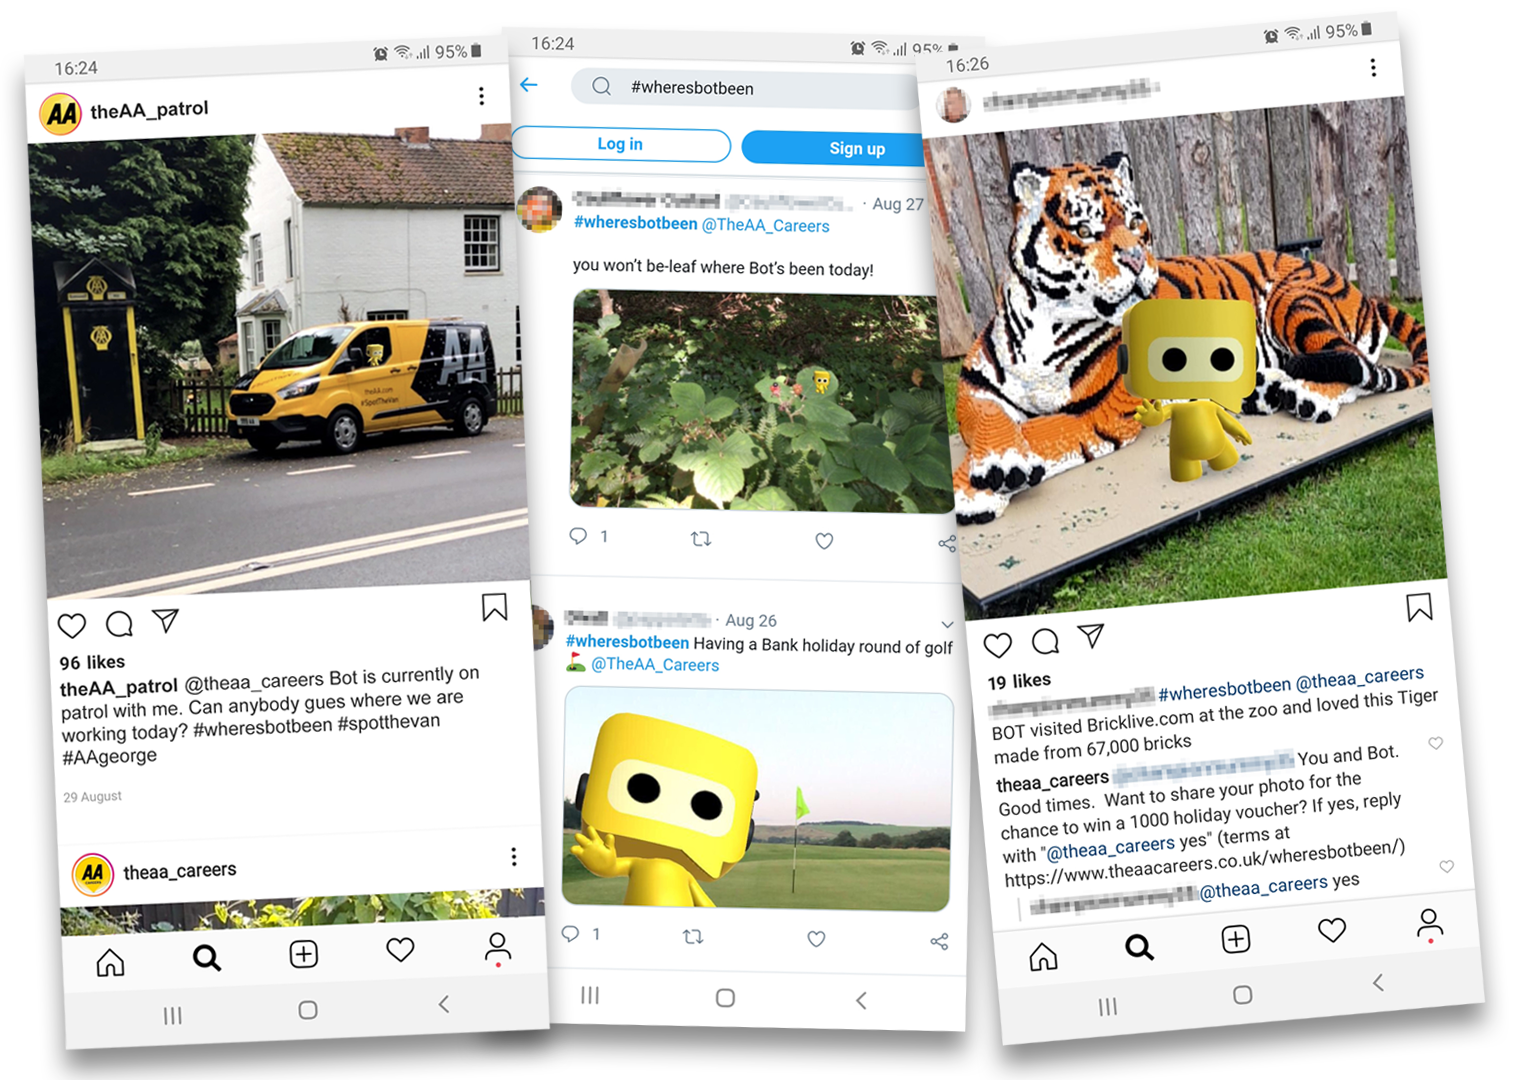 Social media posts from users of the AR app